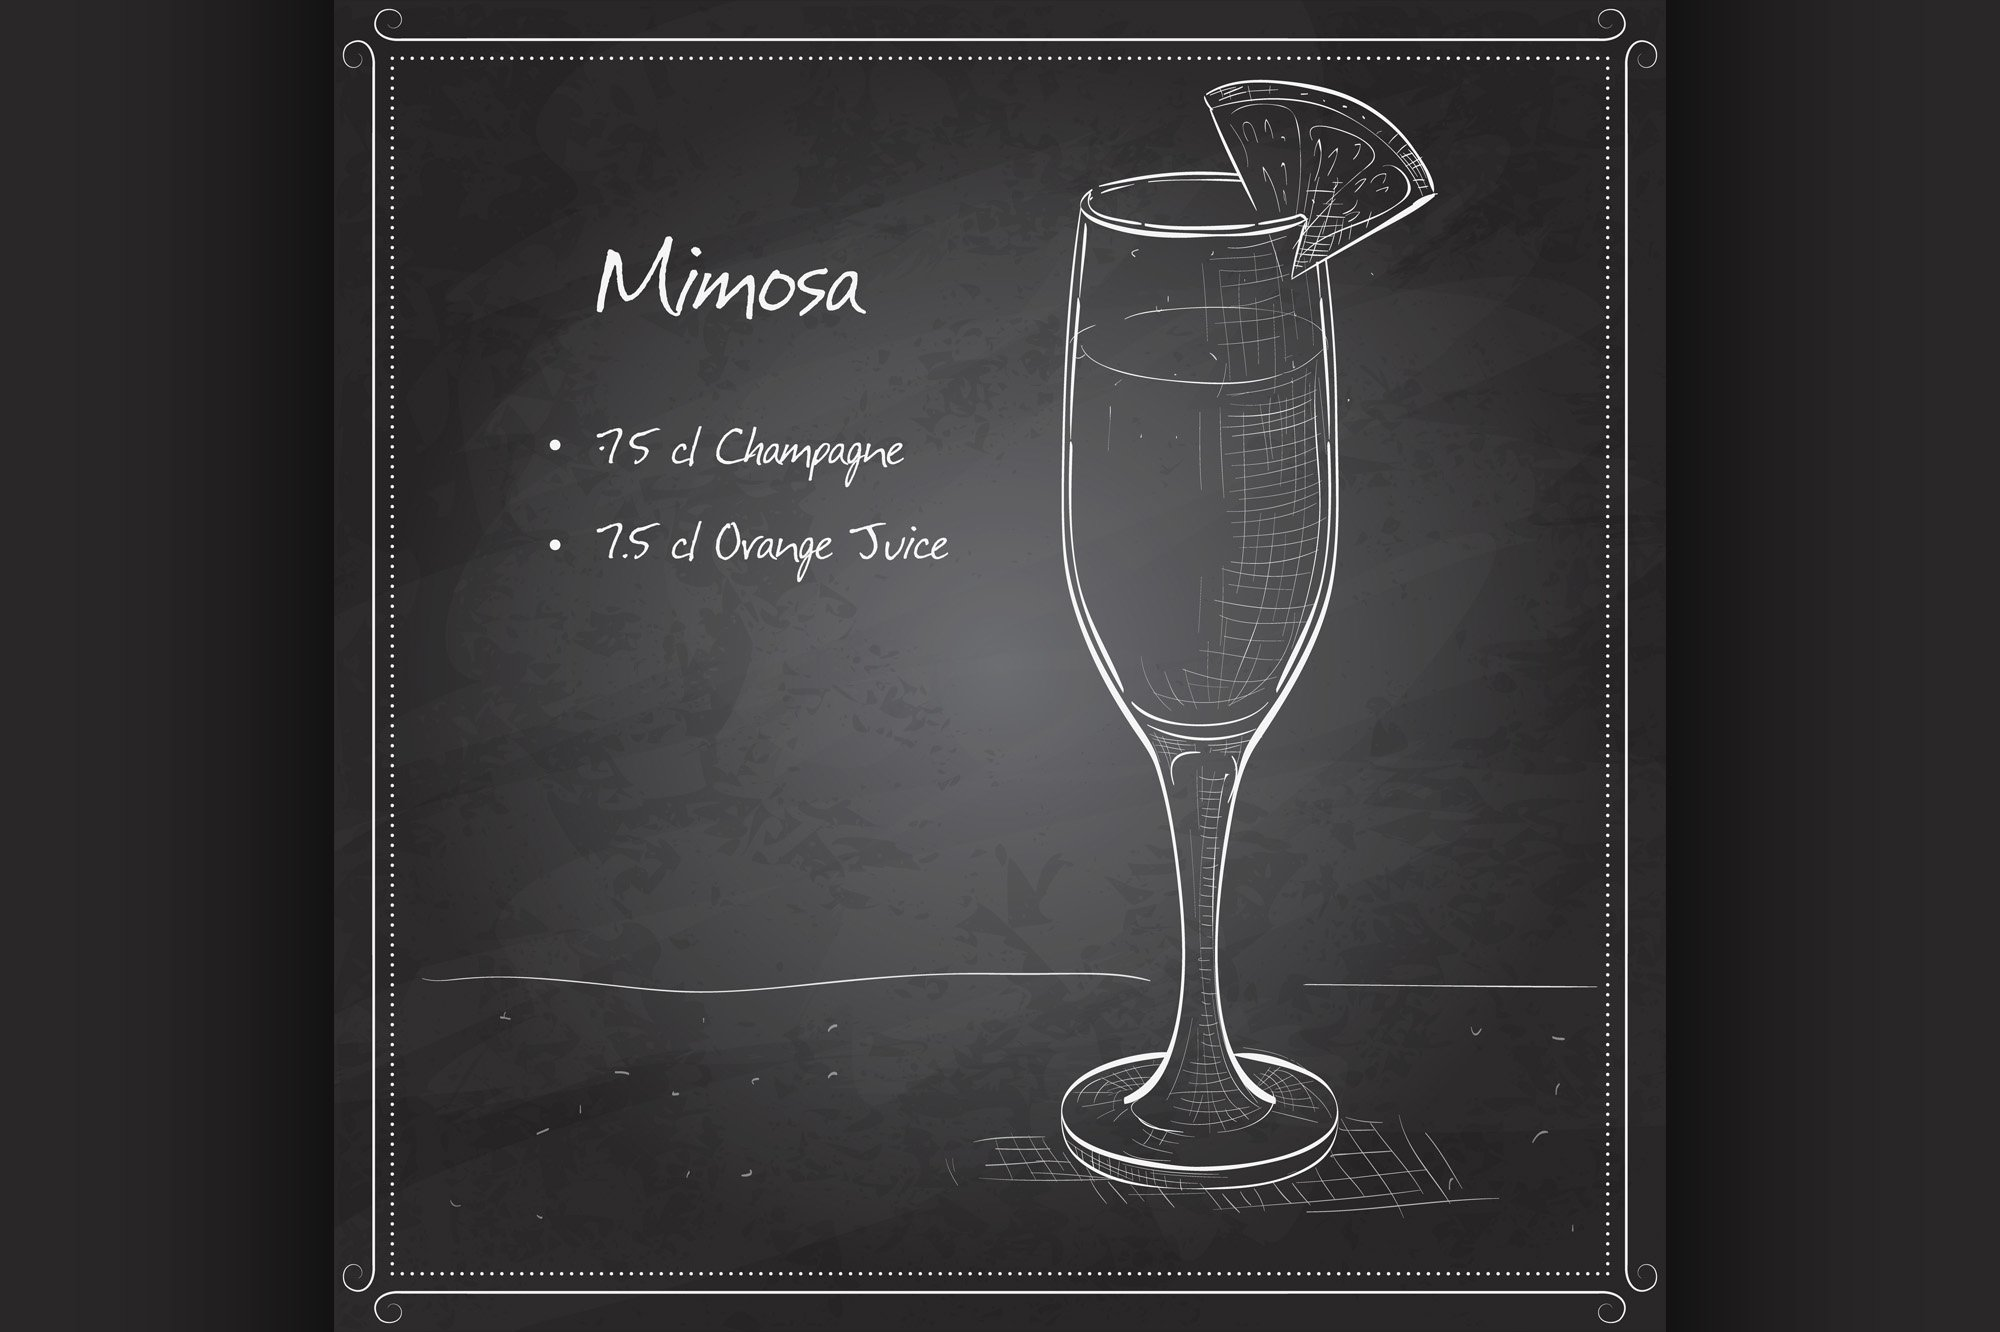 Cocktail alcohol Mimosa on black board example image 1